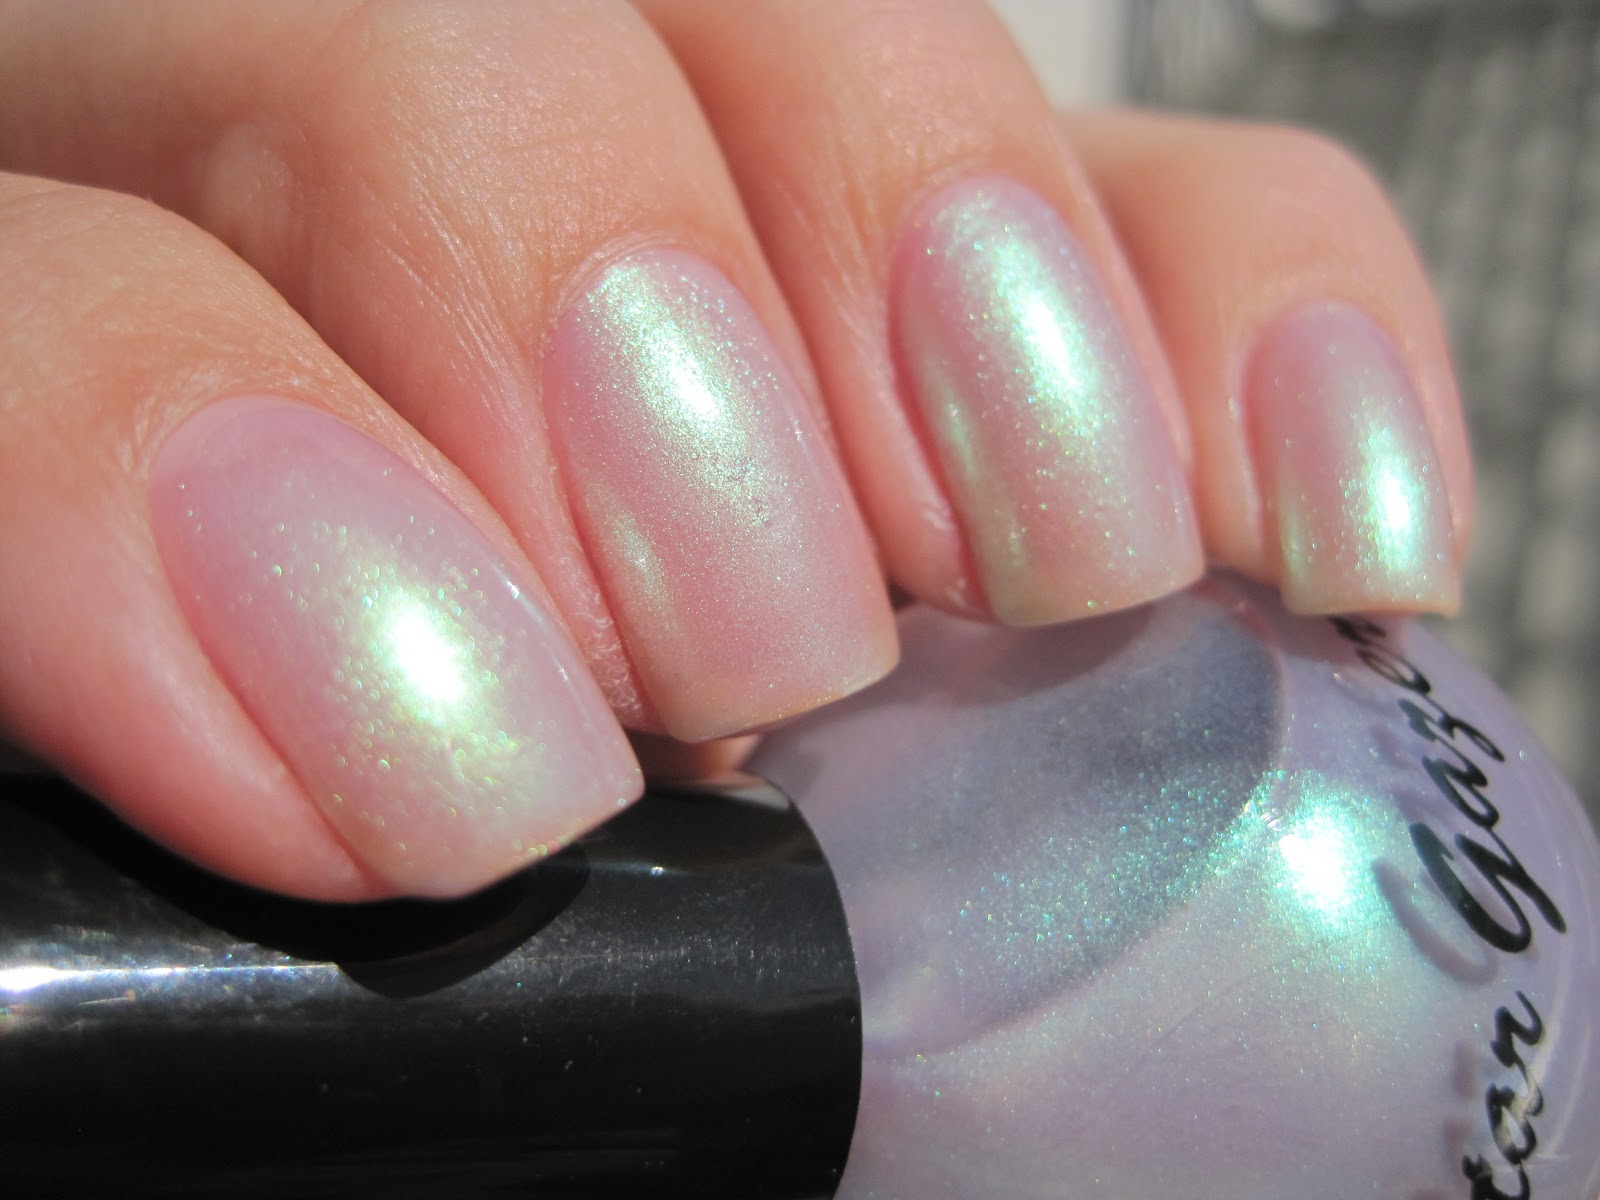 Stargazer Opal 245 Is A Pale Lilac With Green Microshimmer